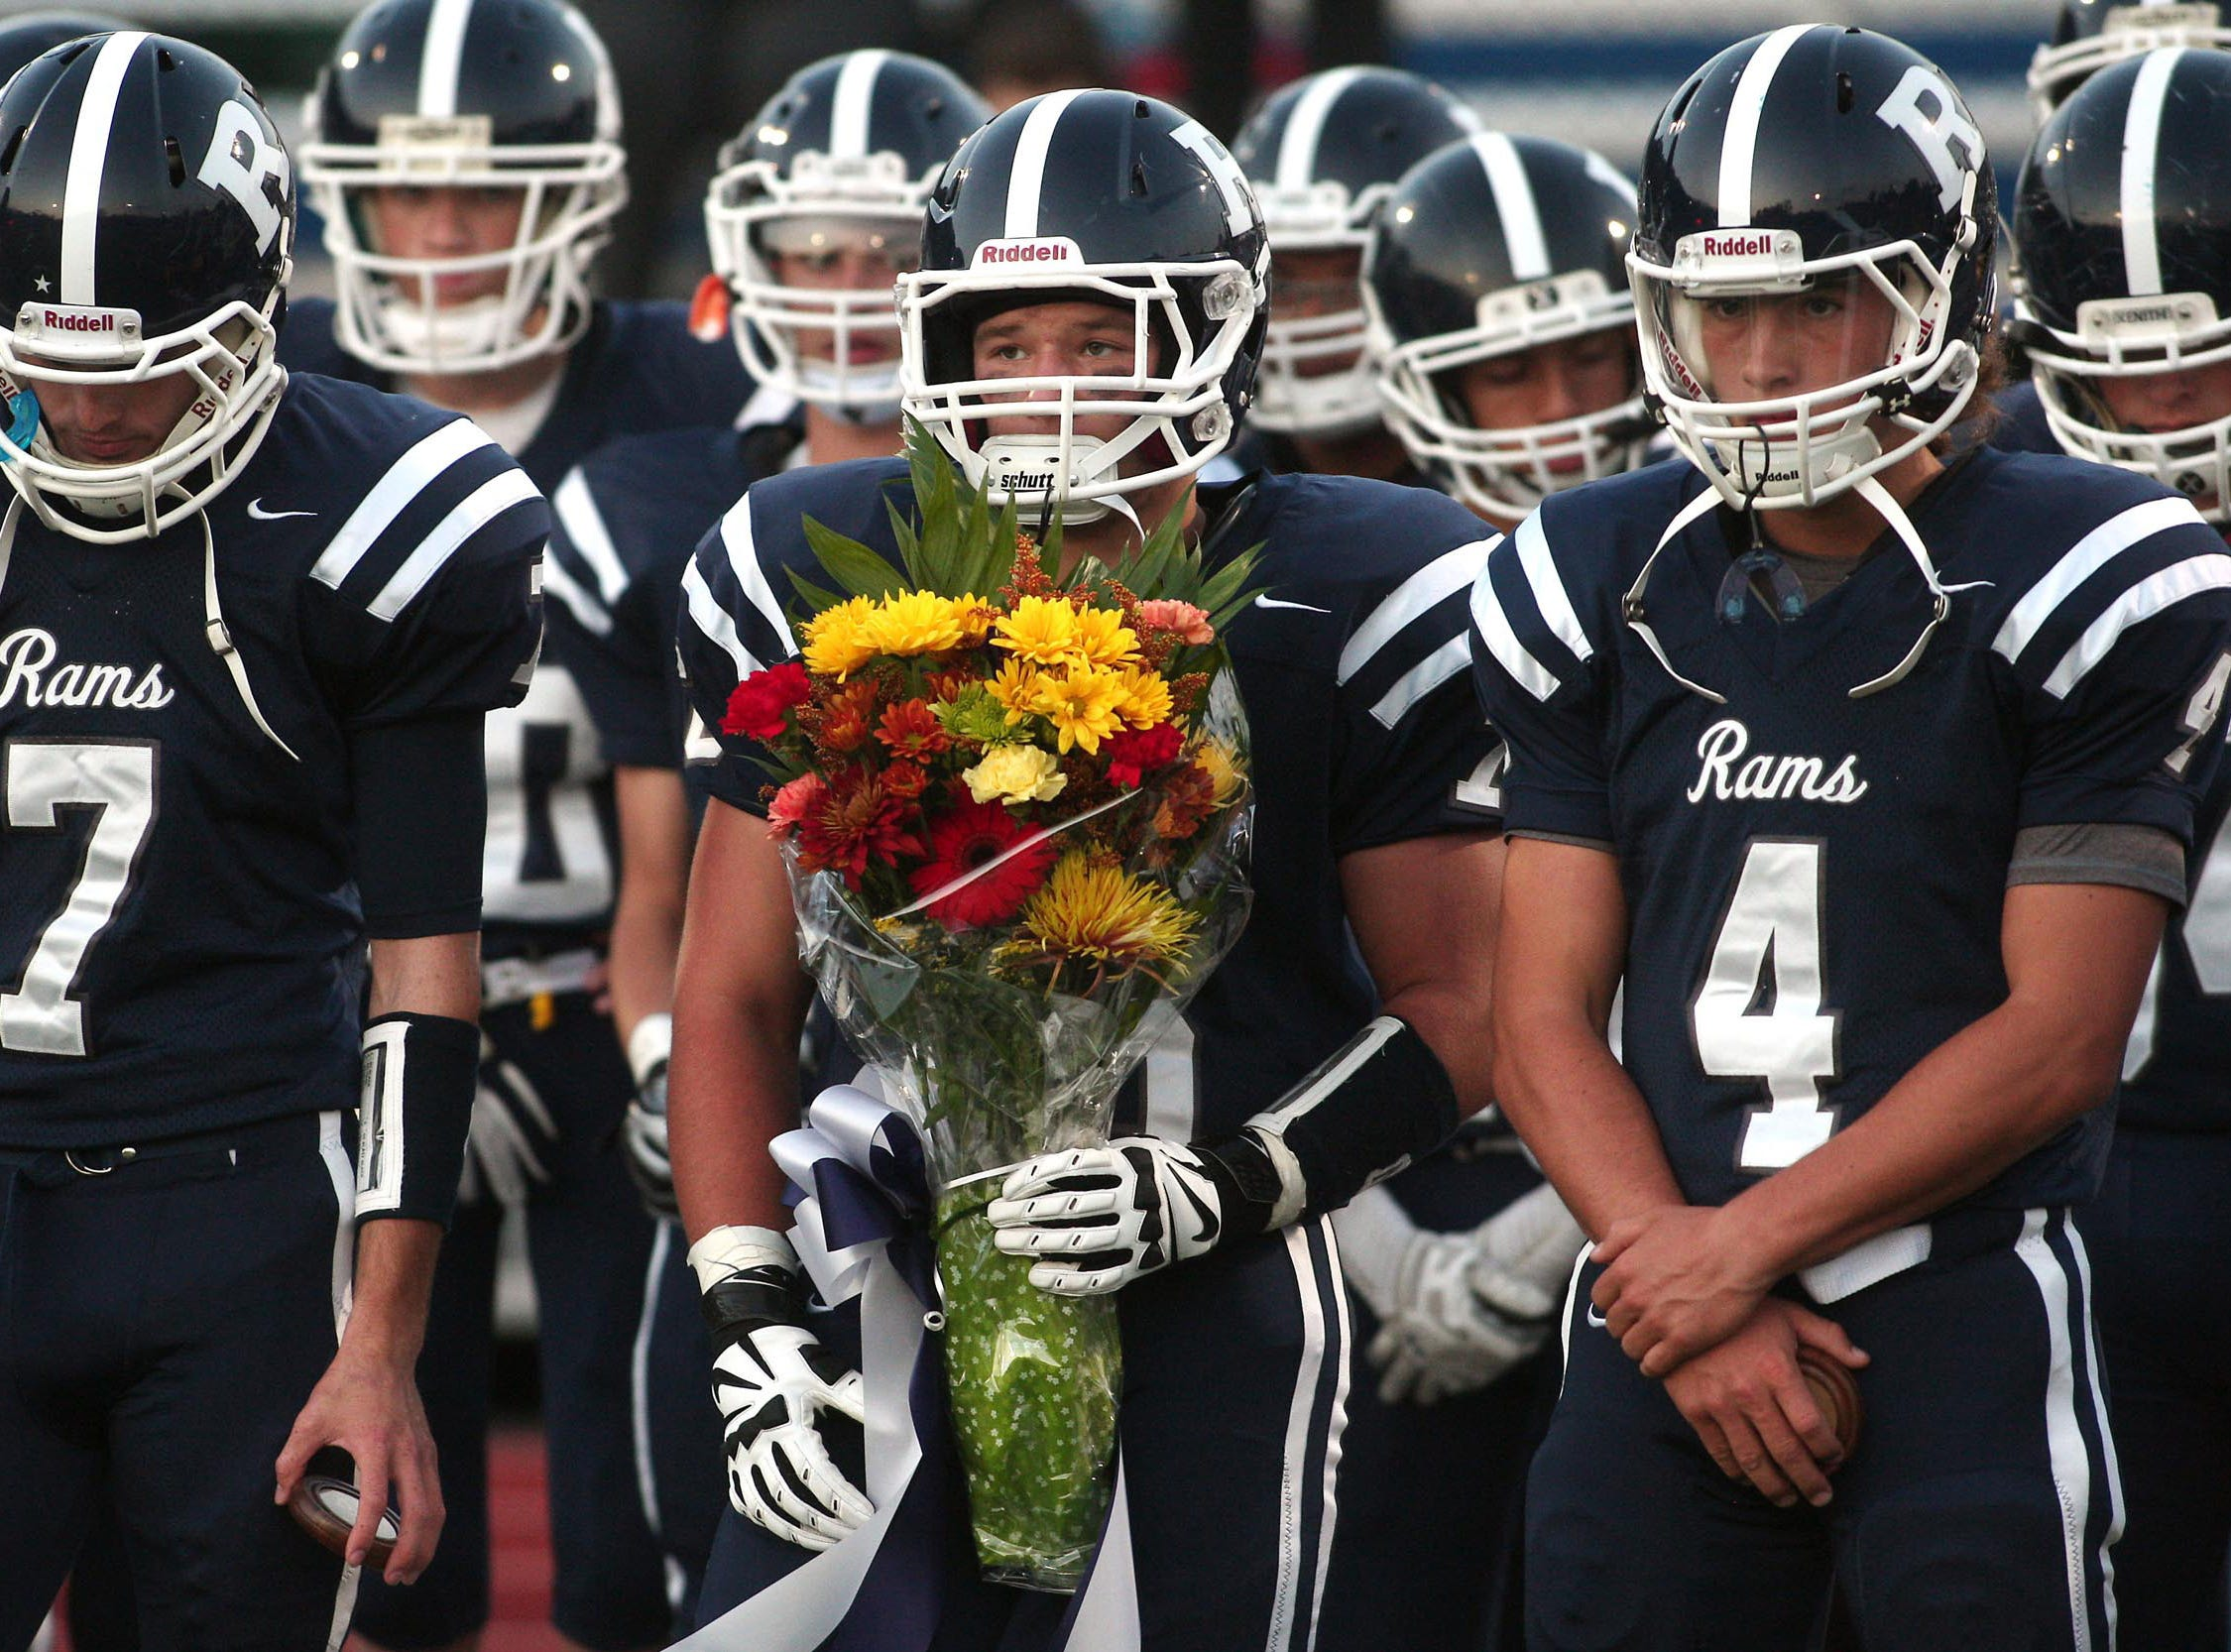 Randolph lineman George Zach holds a bouquet of flowers to give to the mothers of senior football players Jack Timmerman and Calvin Verduga who were killed in a single-car accident on Ironia Road in July during a tribute to the memories of the Randolph players at the first home game of the year, September 19, 2014, Randolph, NJ.